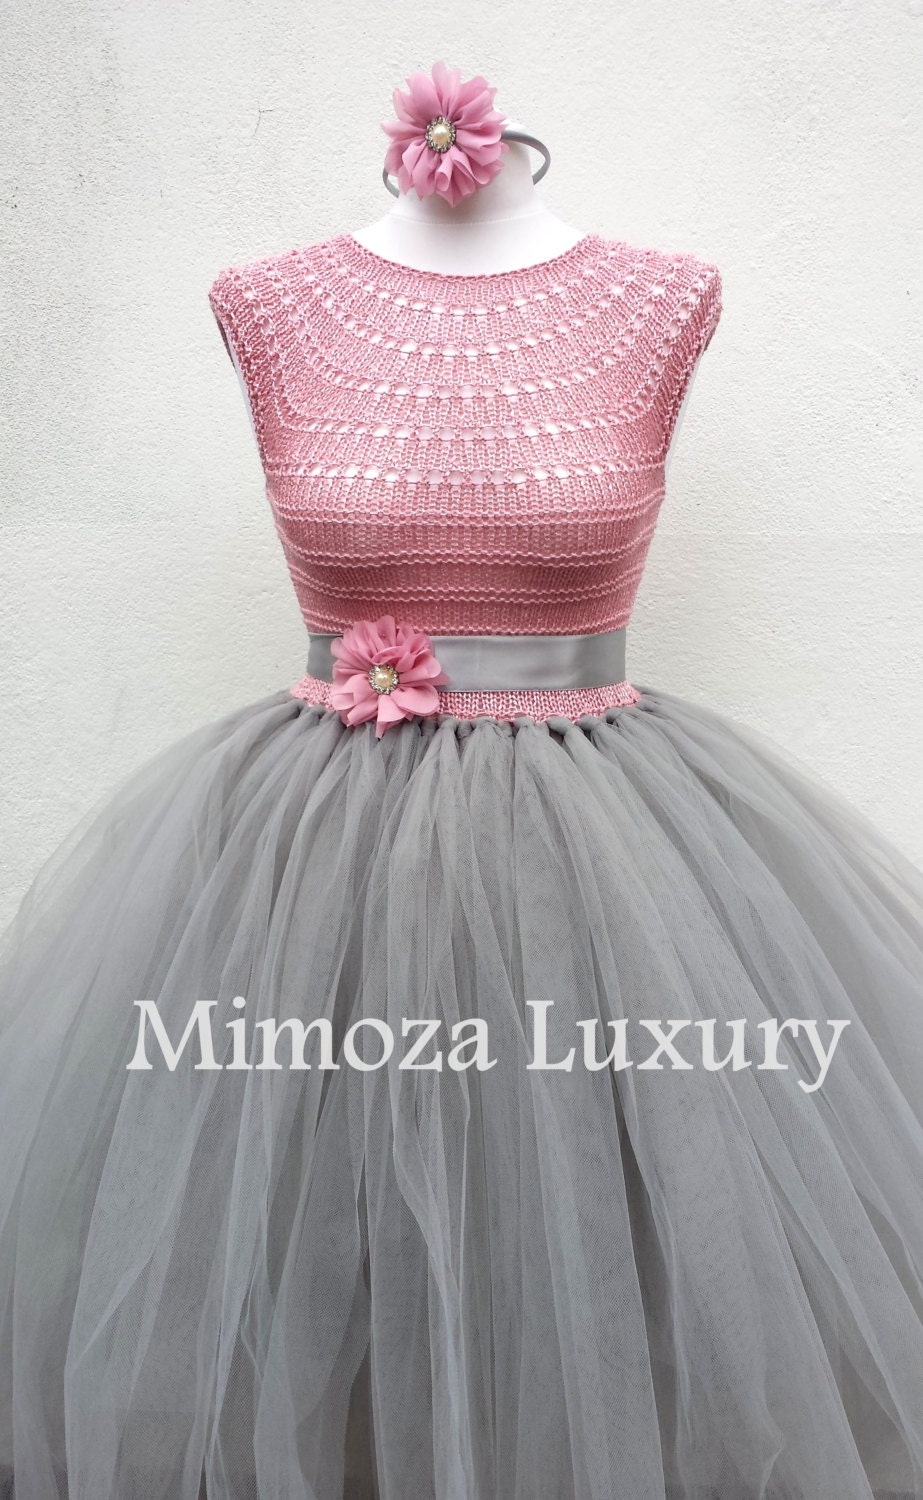 adult tutu dress bridesmaid dress bachelor party bridal